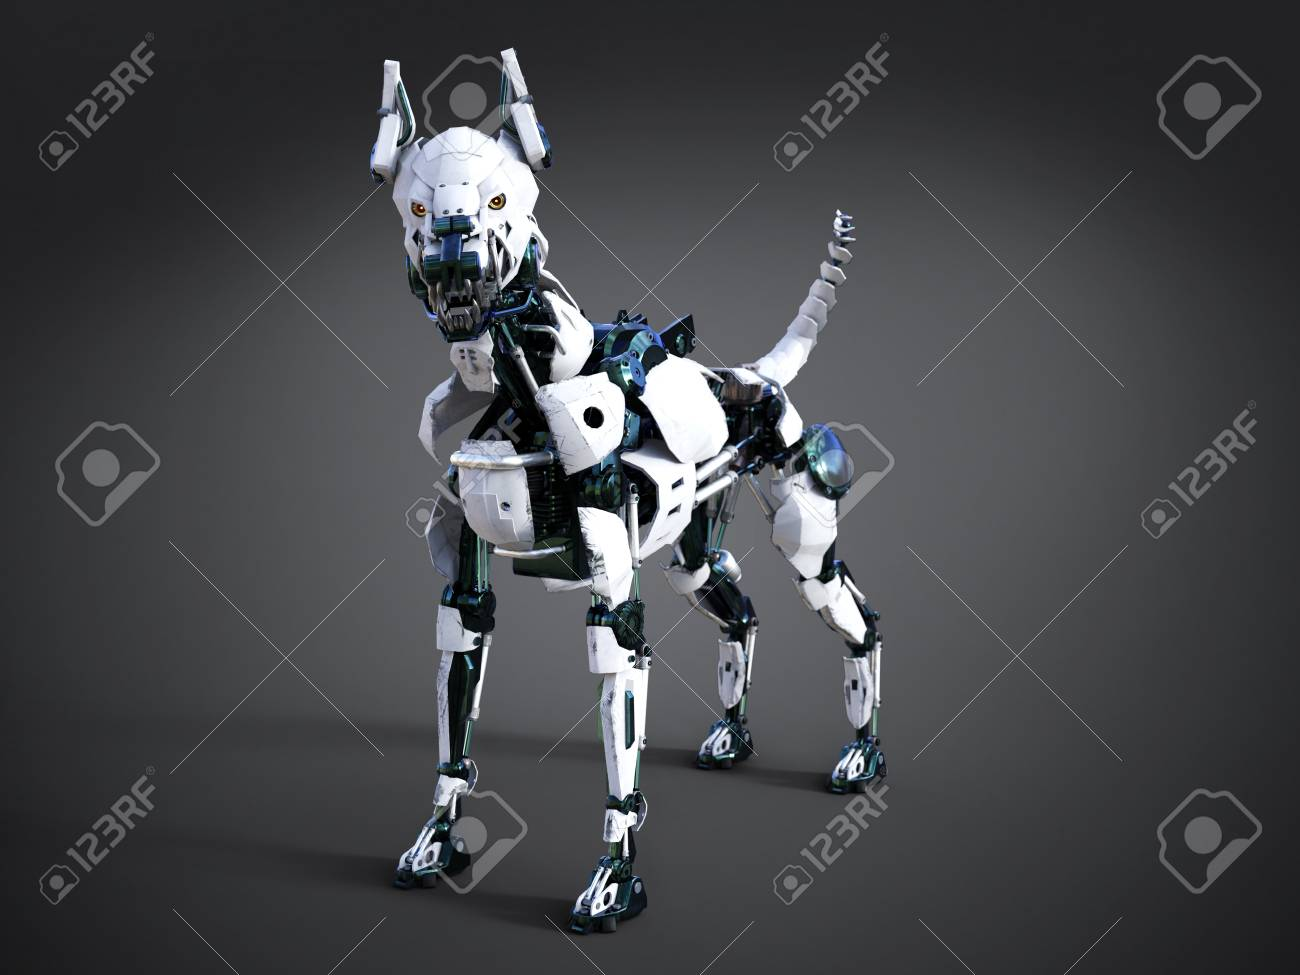 3D rendering of a futuristic mean looking robot dog  Dark background